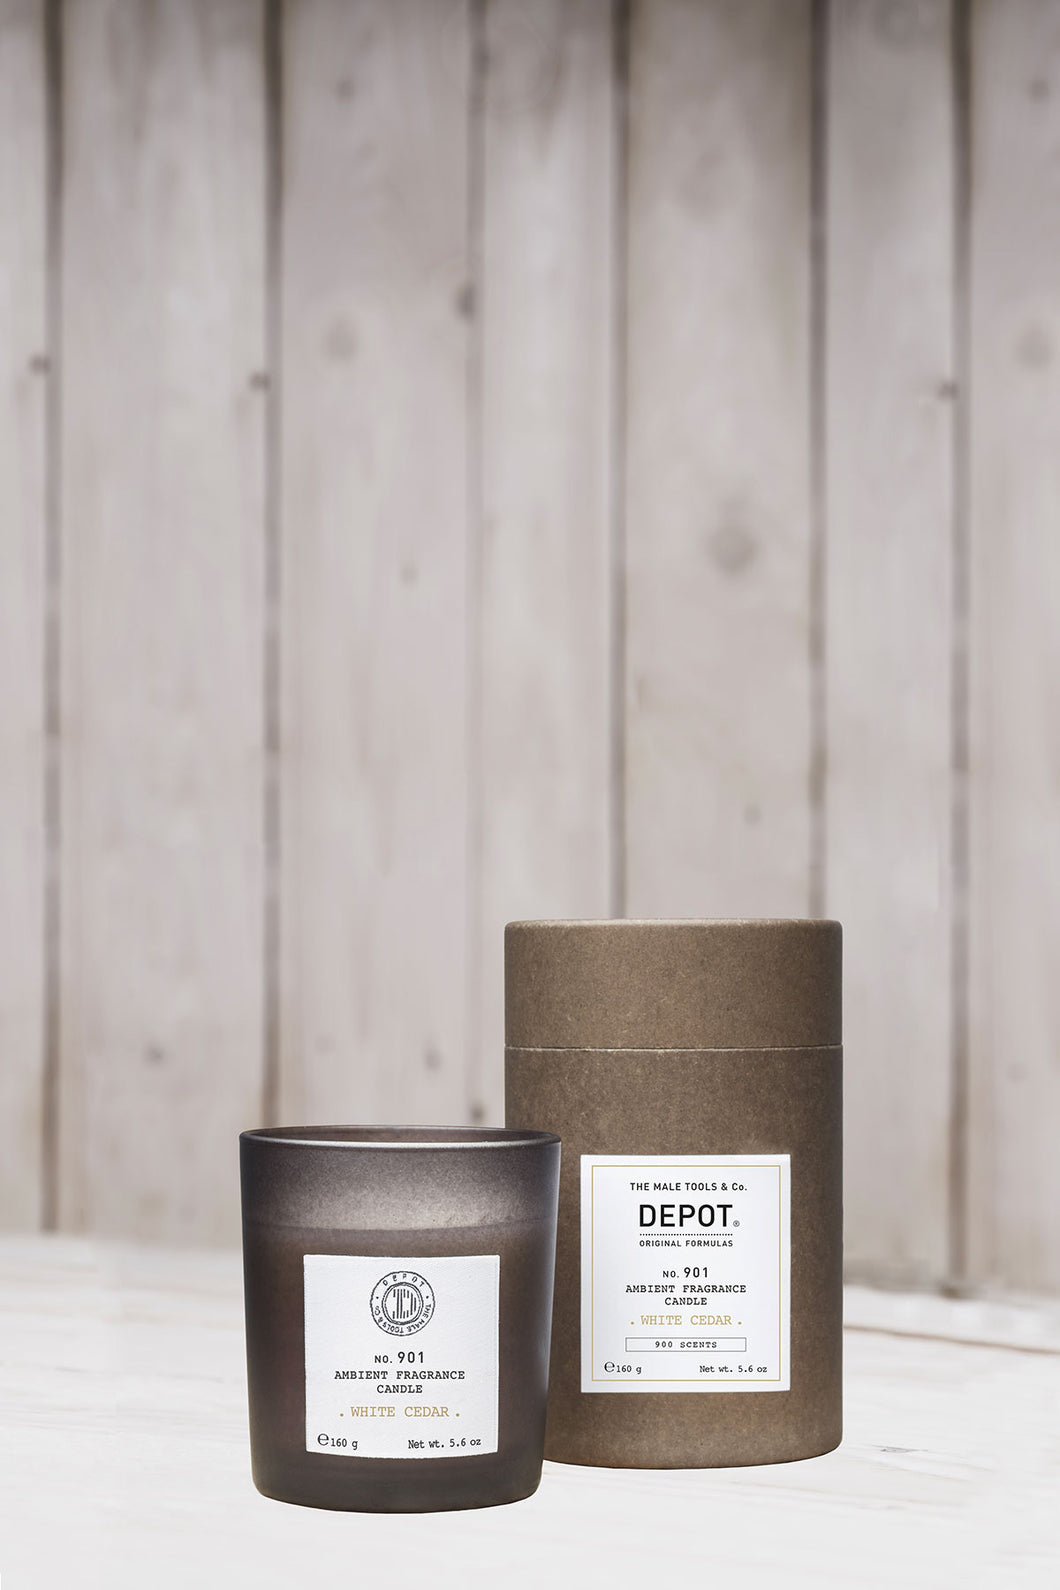 DEPOT MENS - NO. 901 AMBIENT FRAGRANCE CANDLE